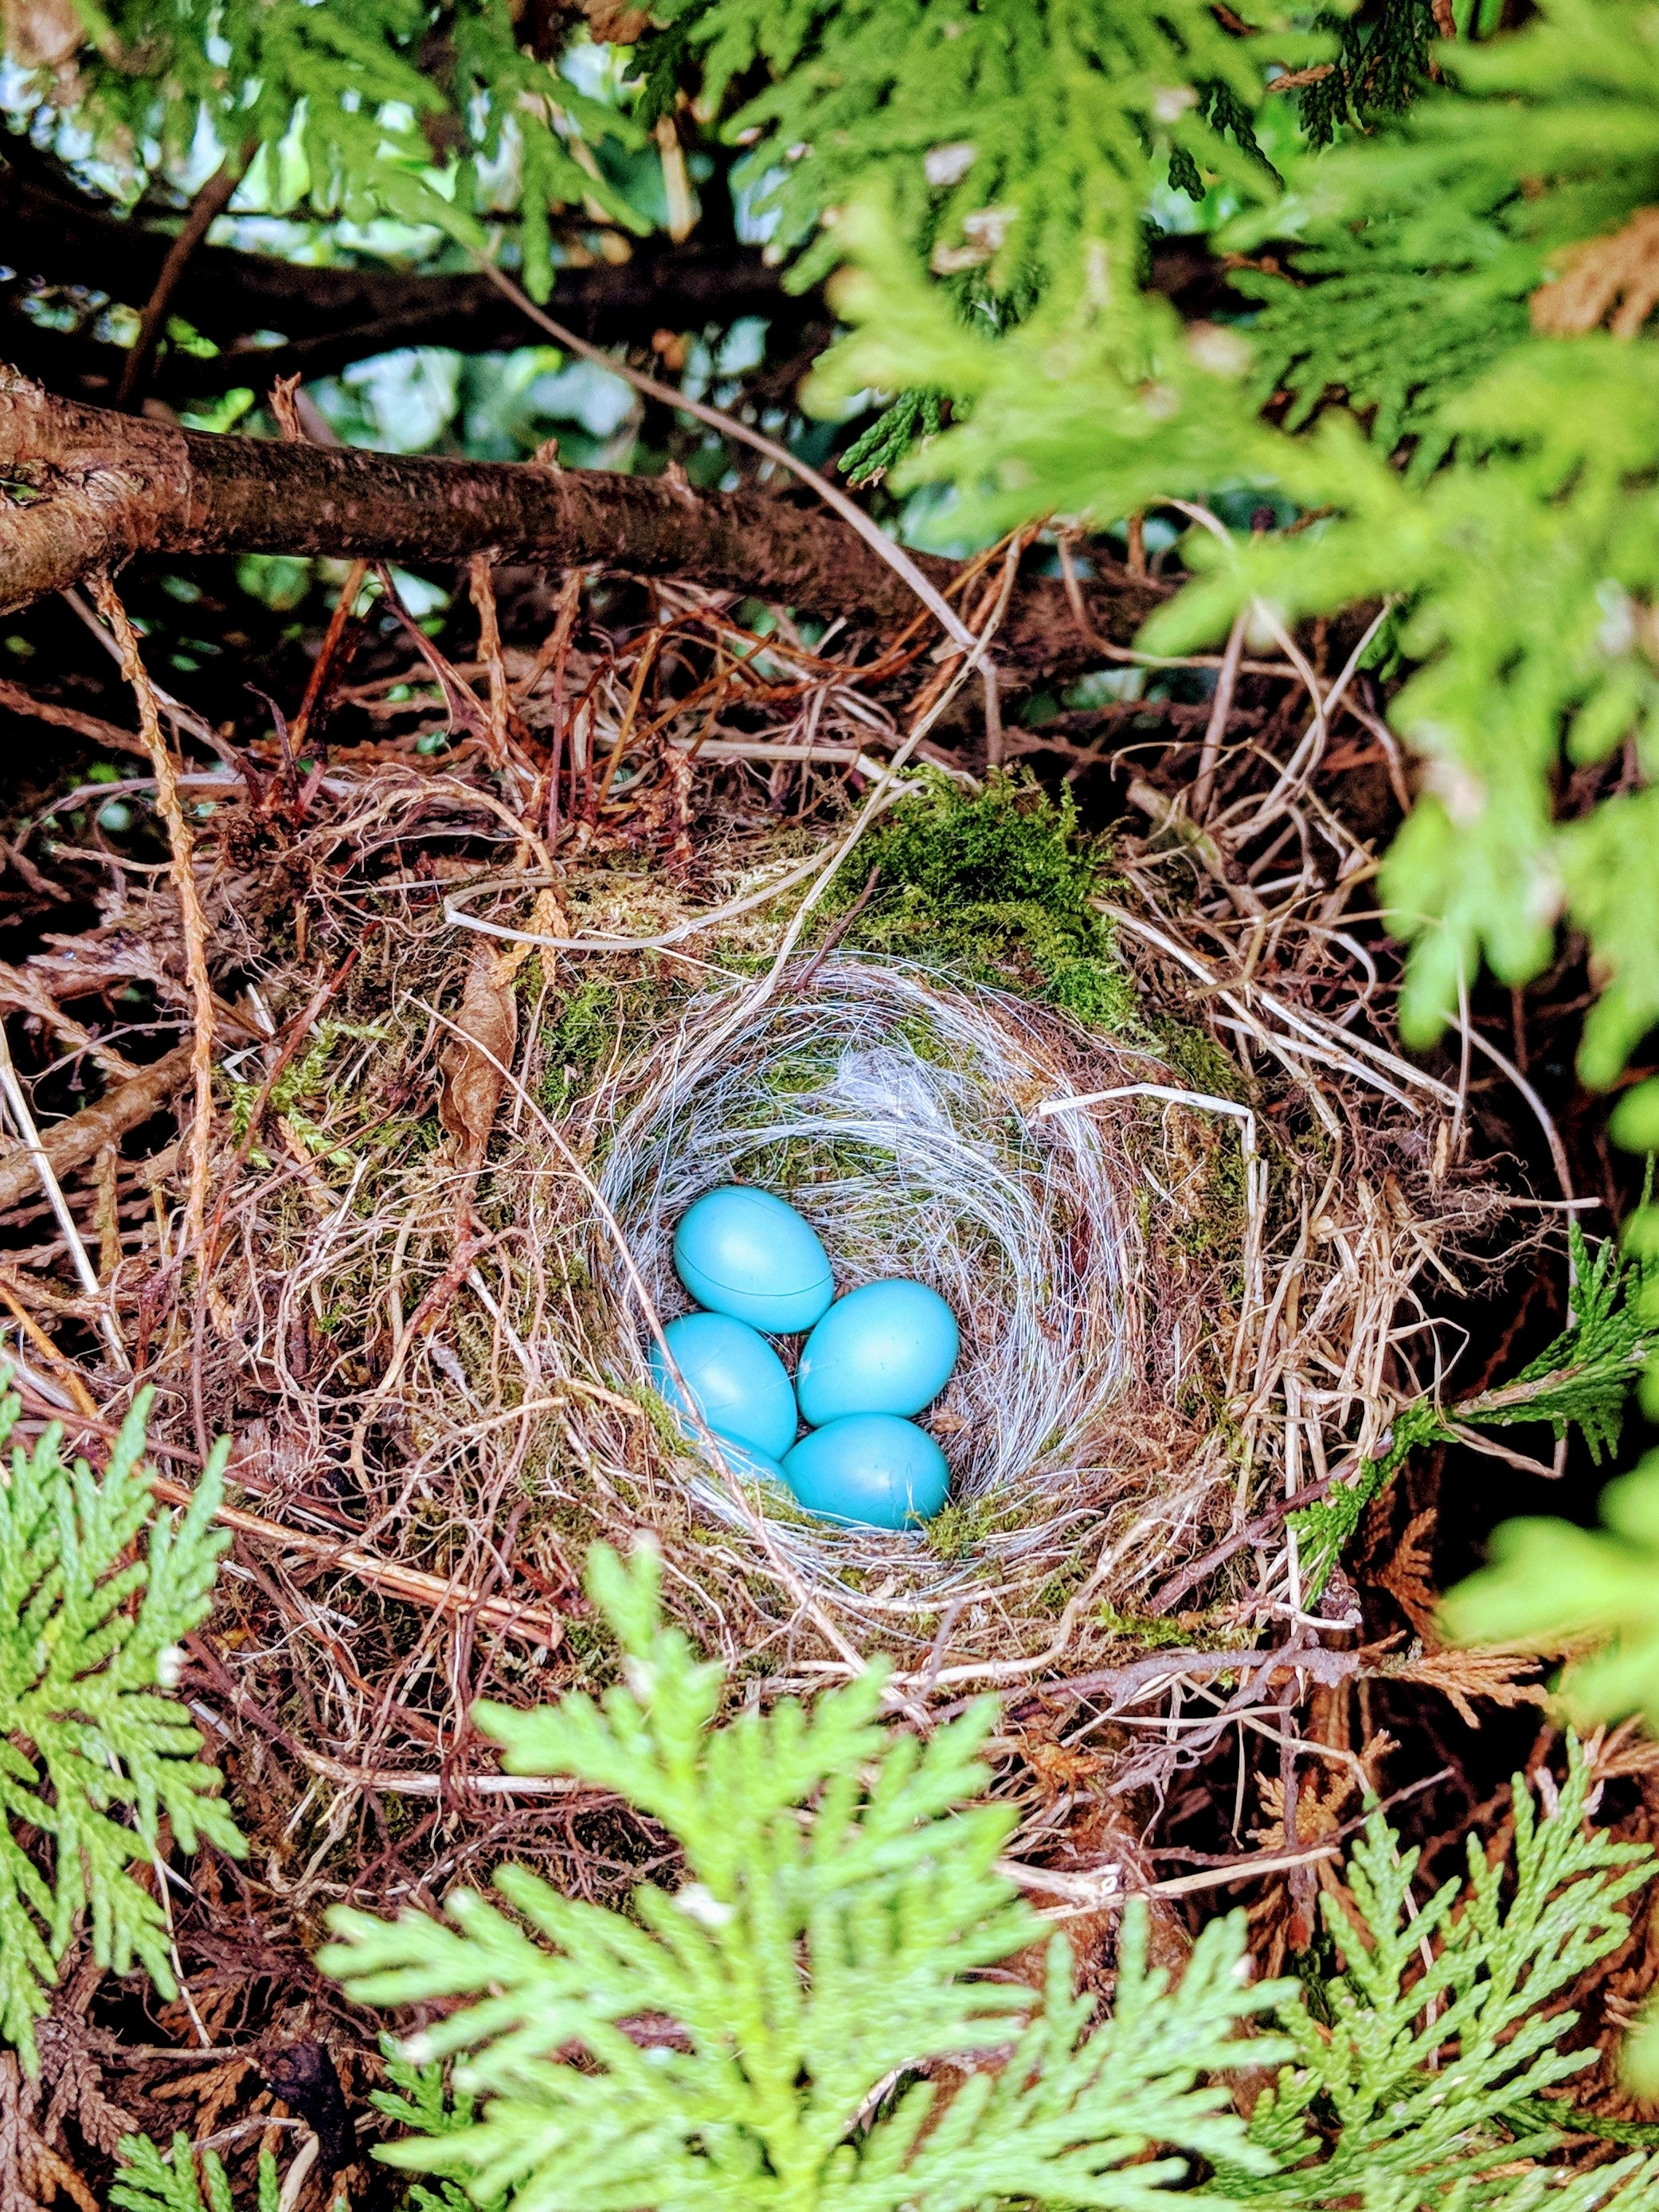 birds-nest-of-twigs-moss-and-hair-with-four-blue-eggs-amid-evergreen-trees